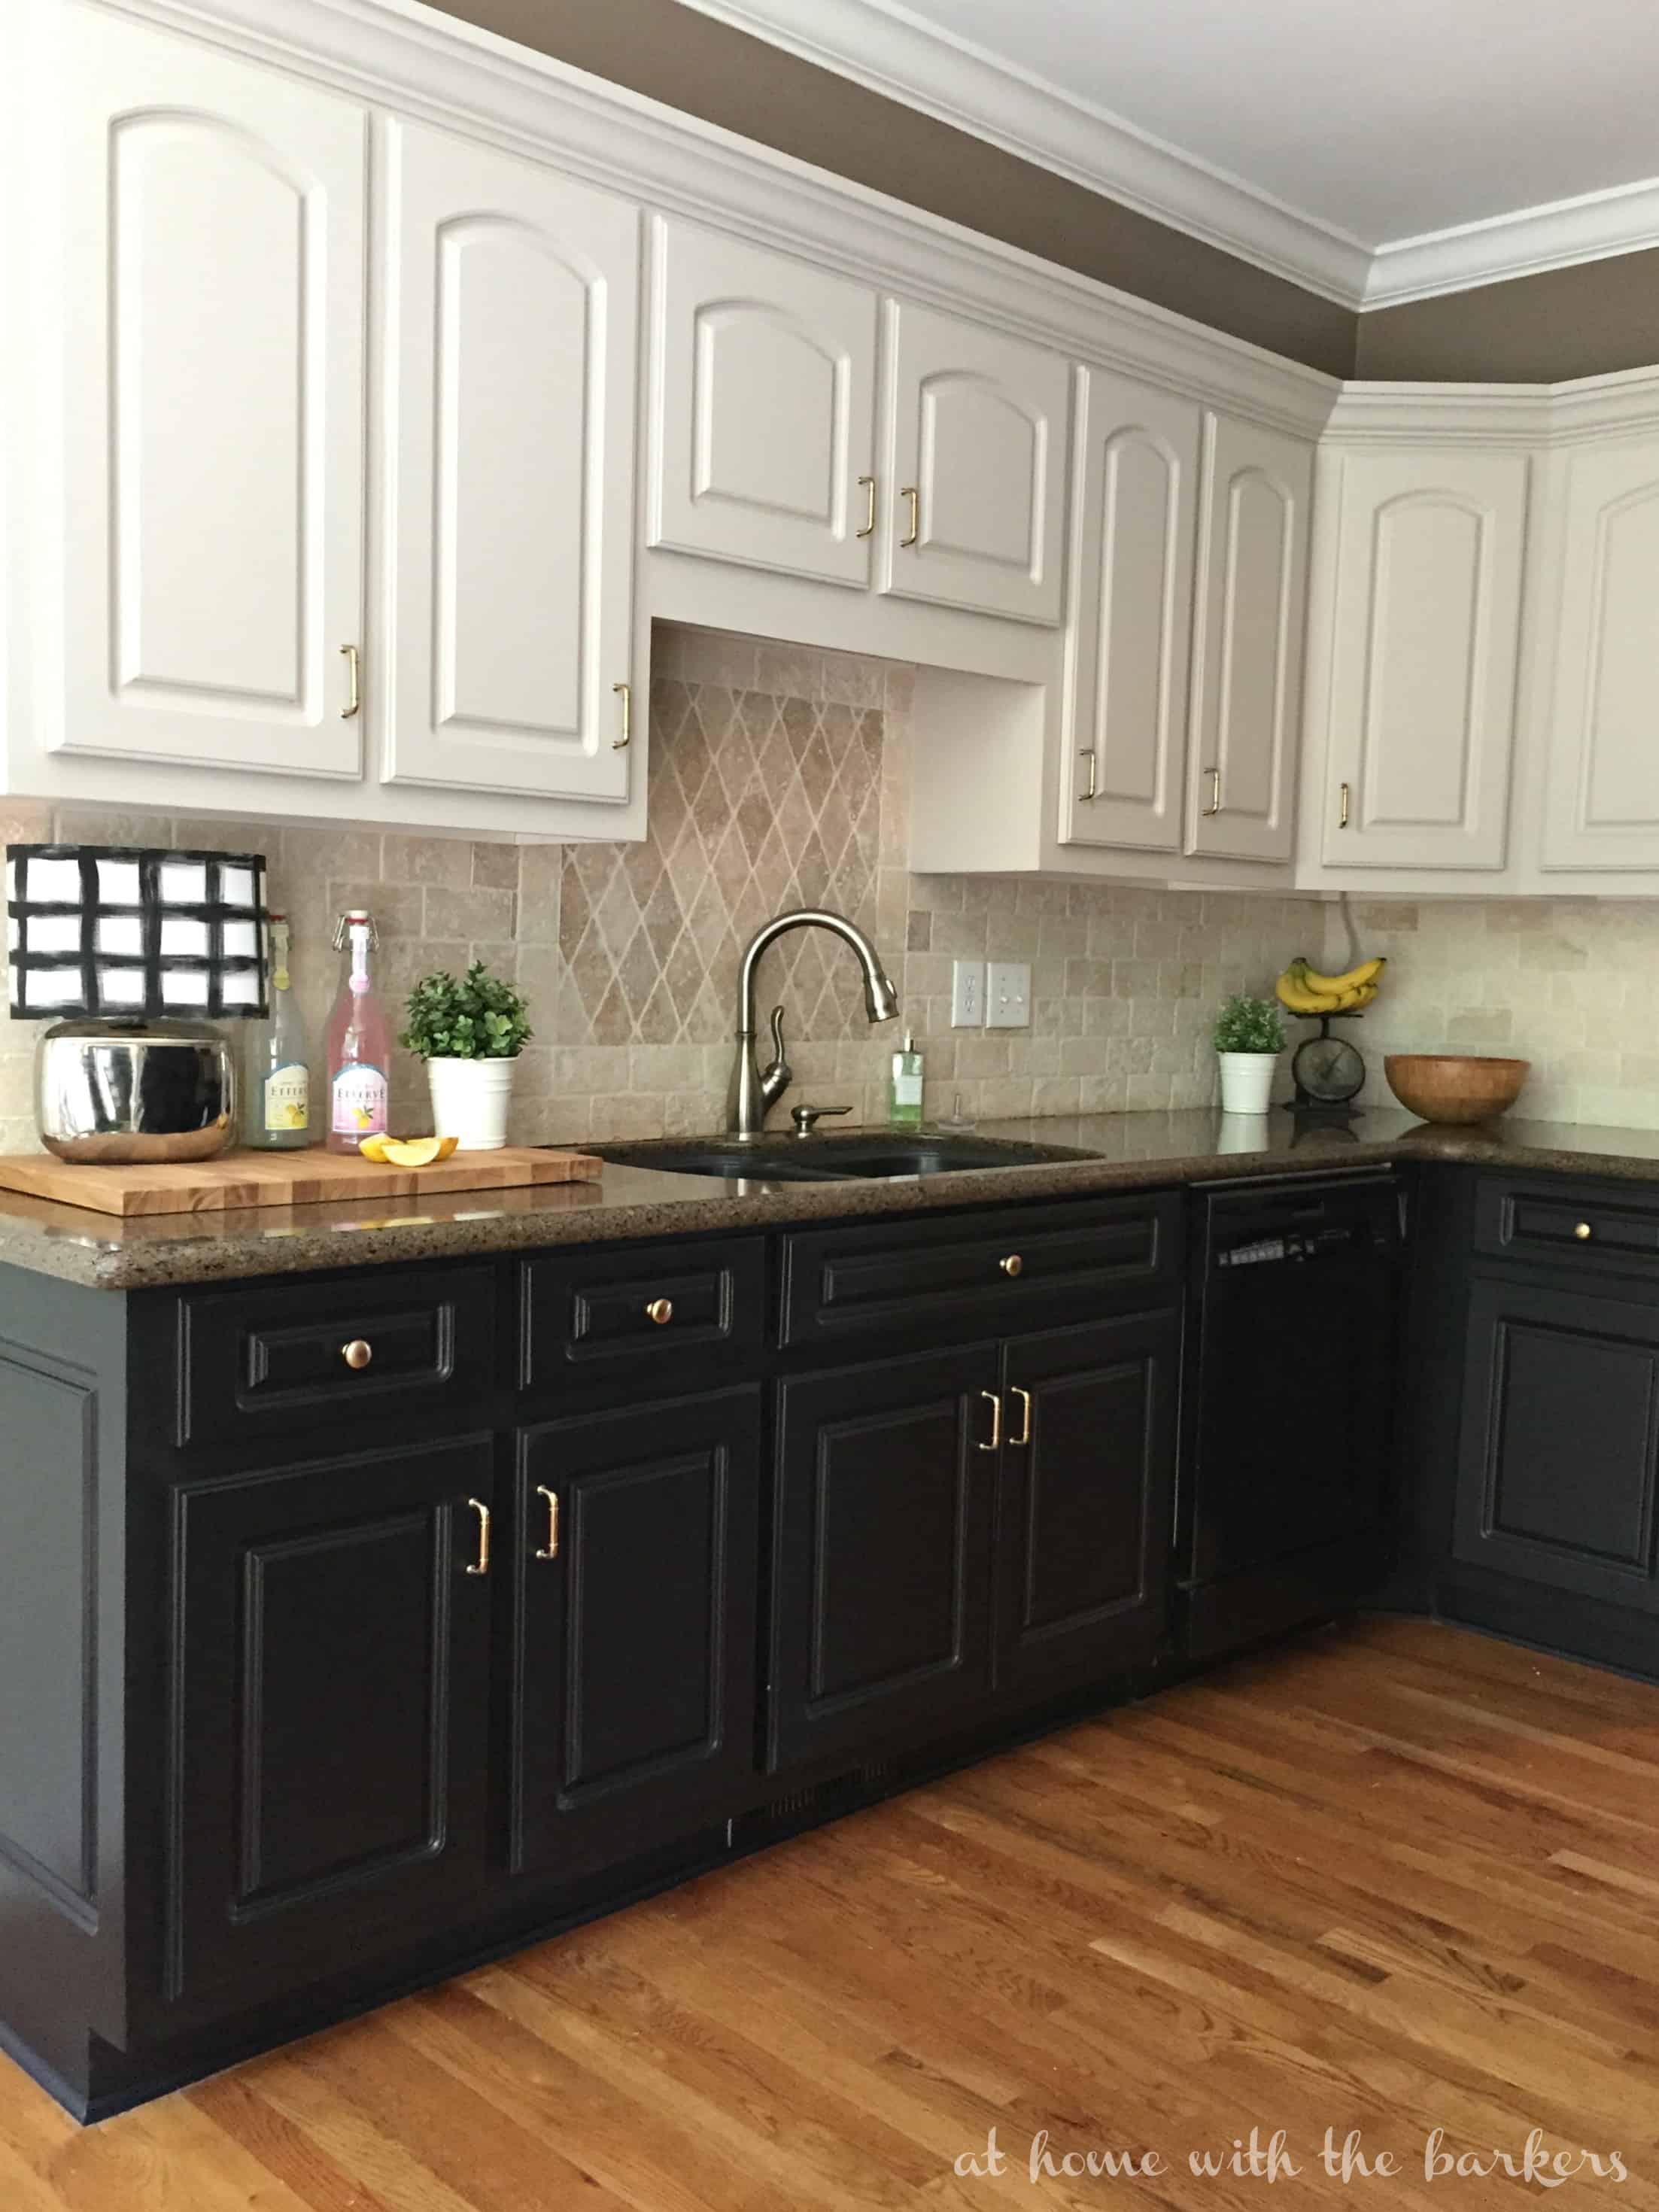 Black kitchen cabinets the ugly truth at home with the for Painting kitchen cabinets